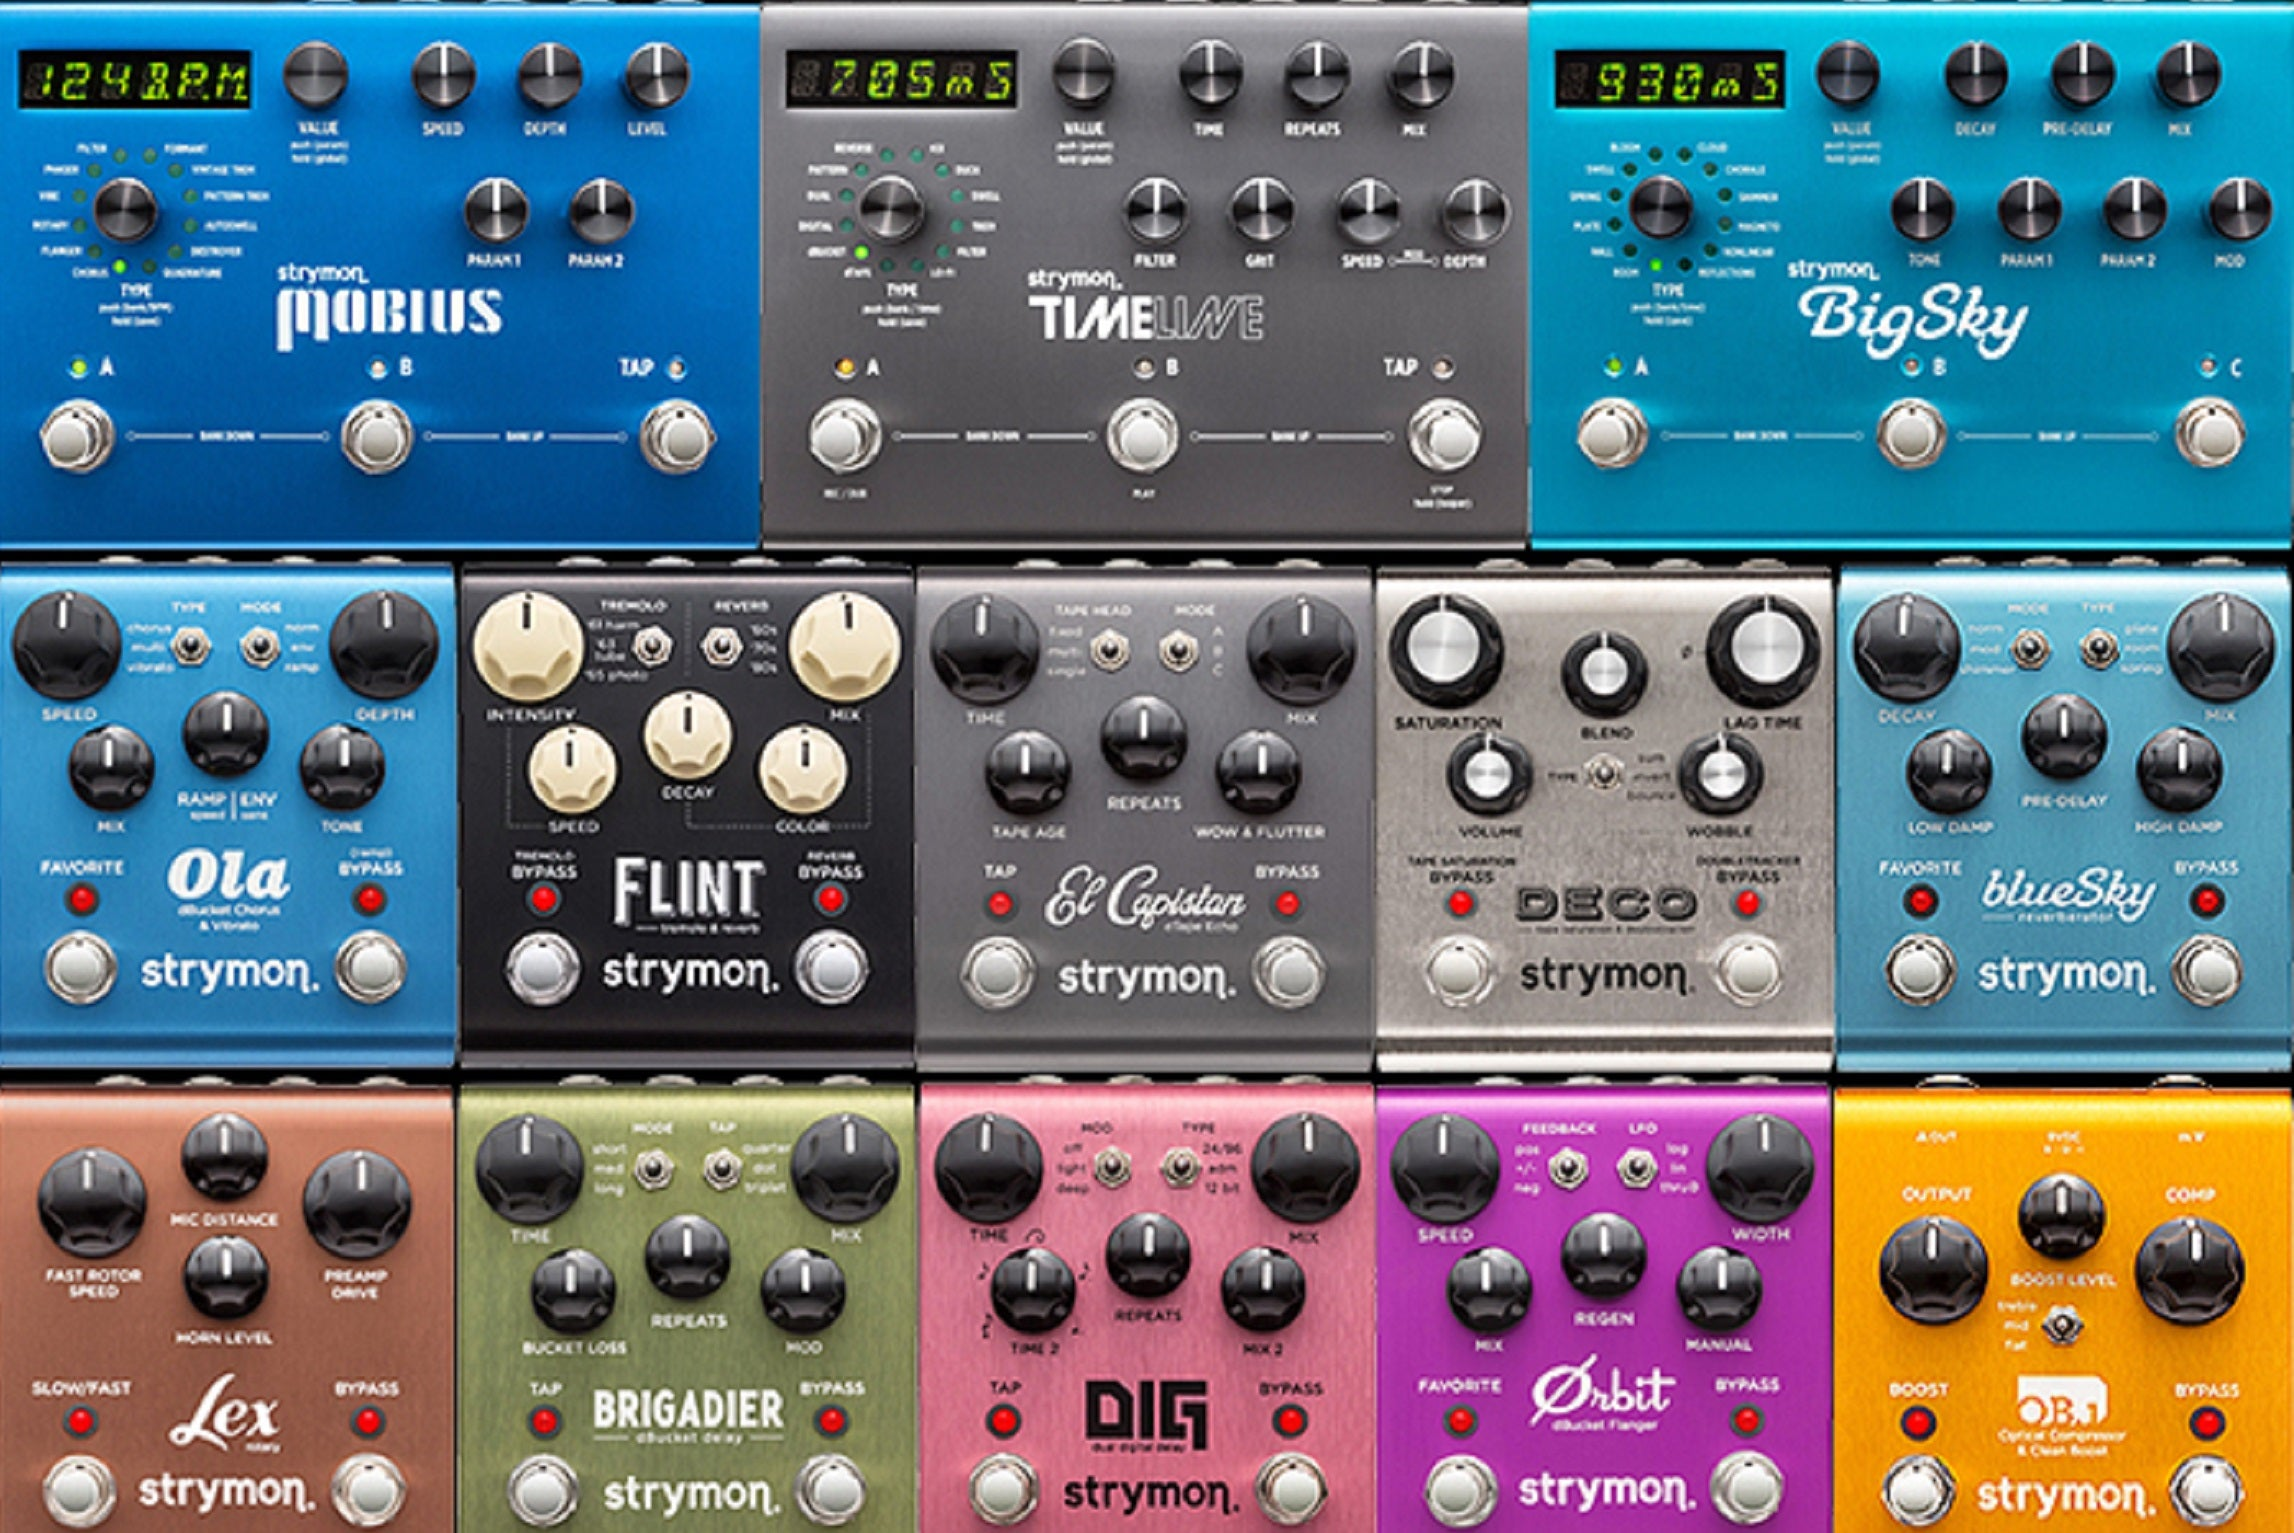 Strymon Engineering